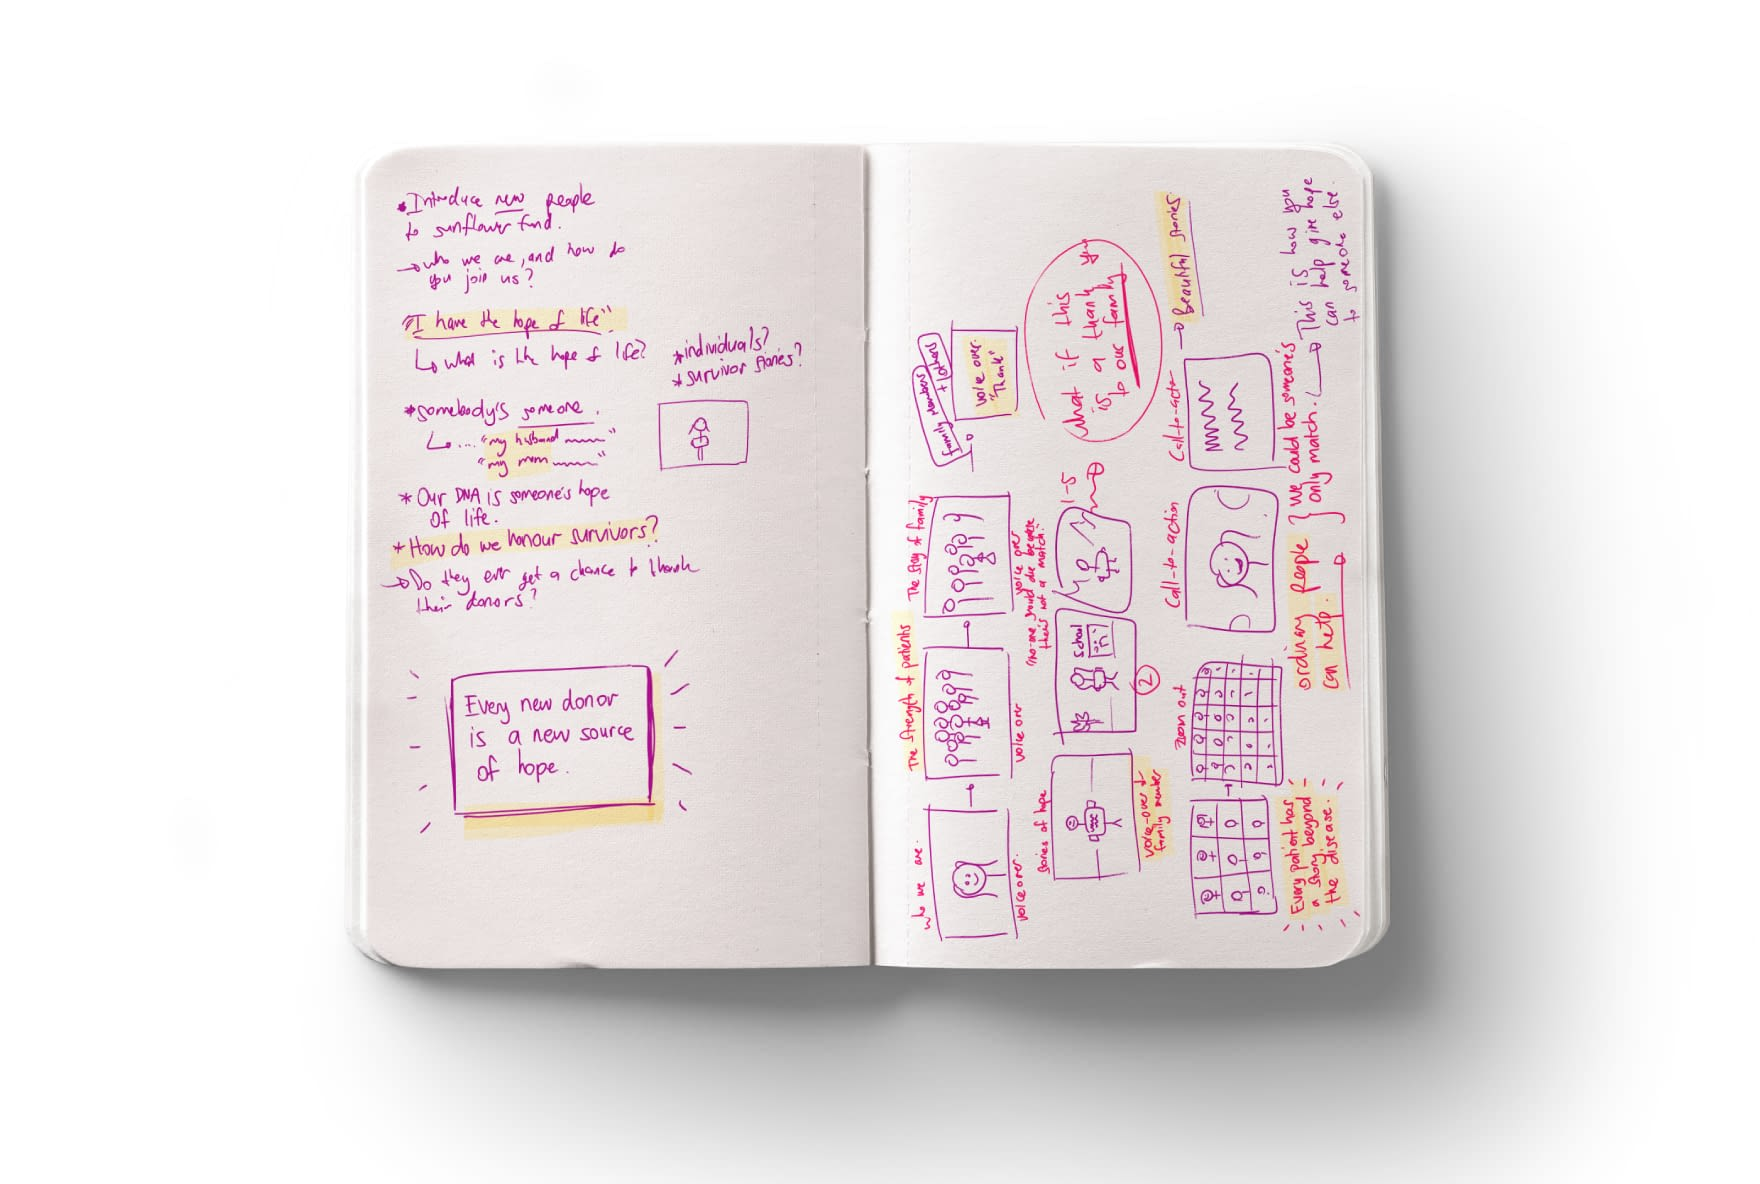 Photo of Notebook with Awareness Campaign Storyboard and Script Notes